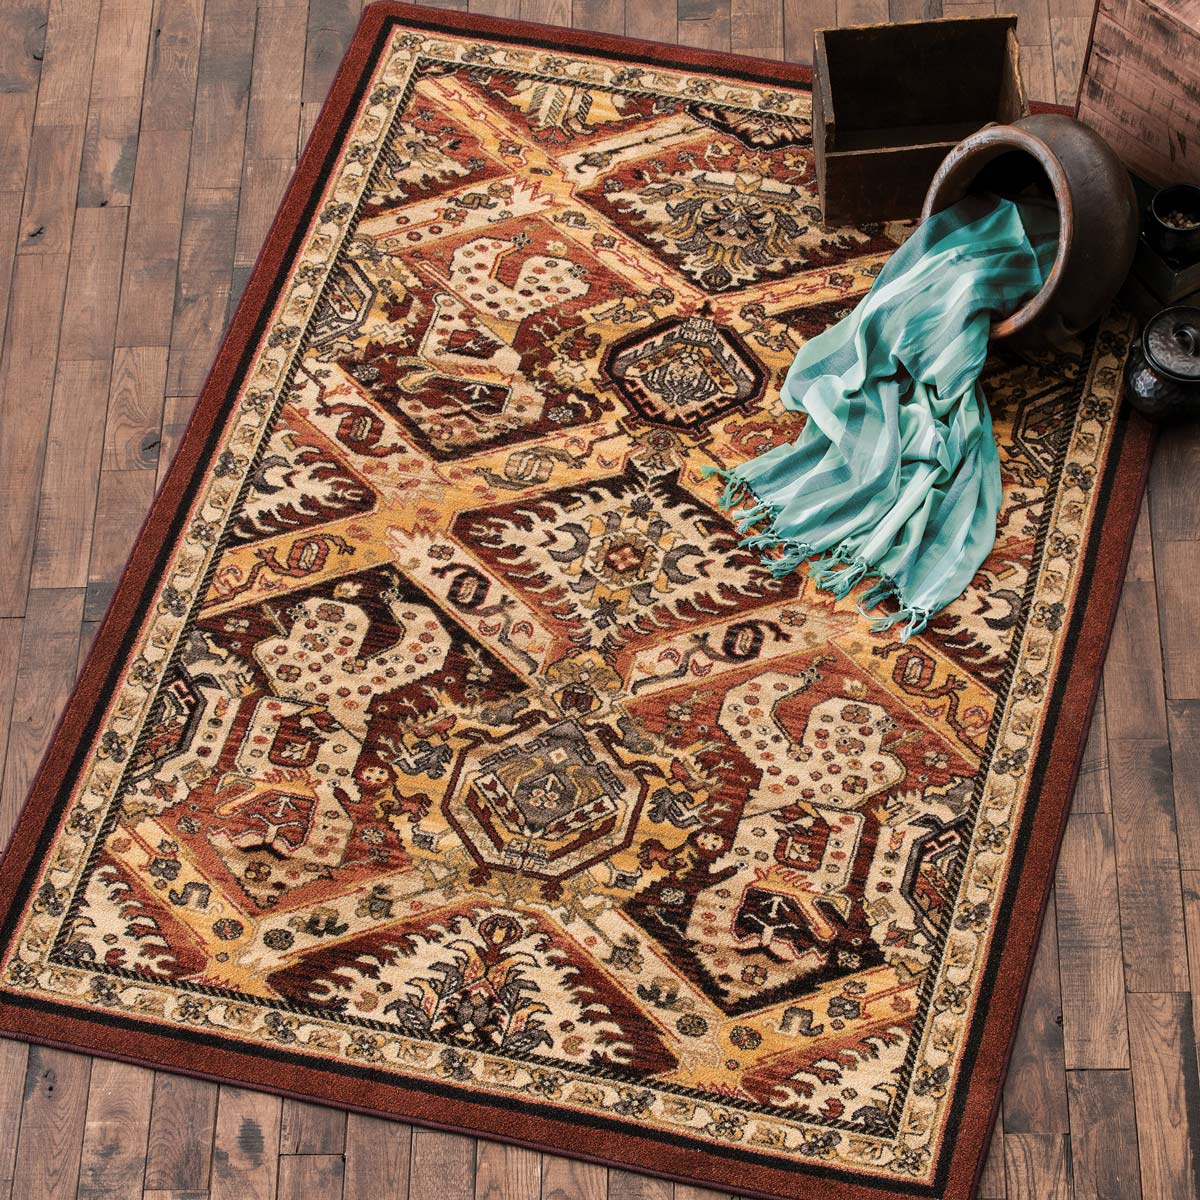 Spirit Dancer Rug - 3 x 4